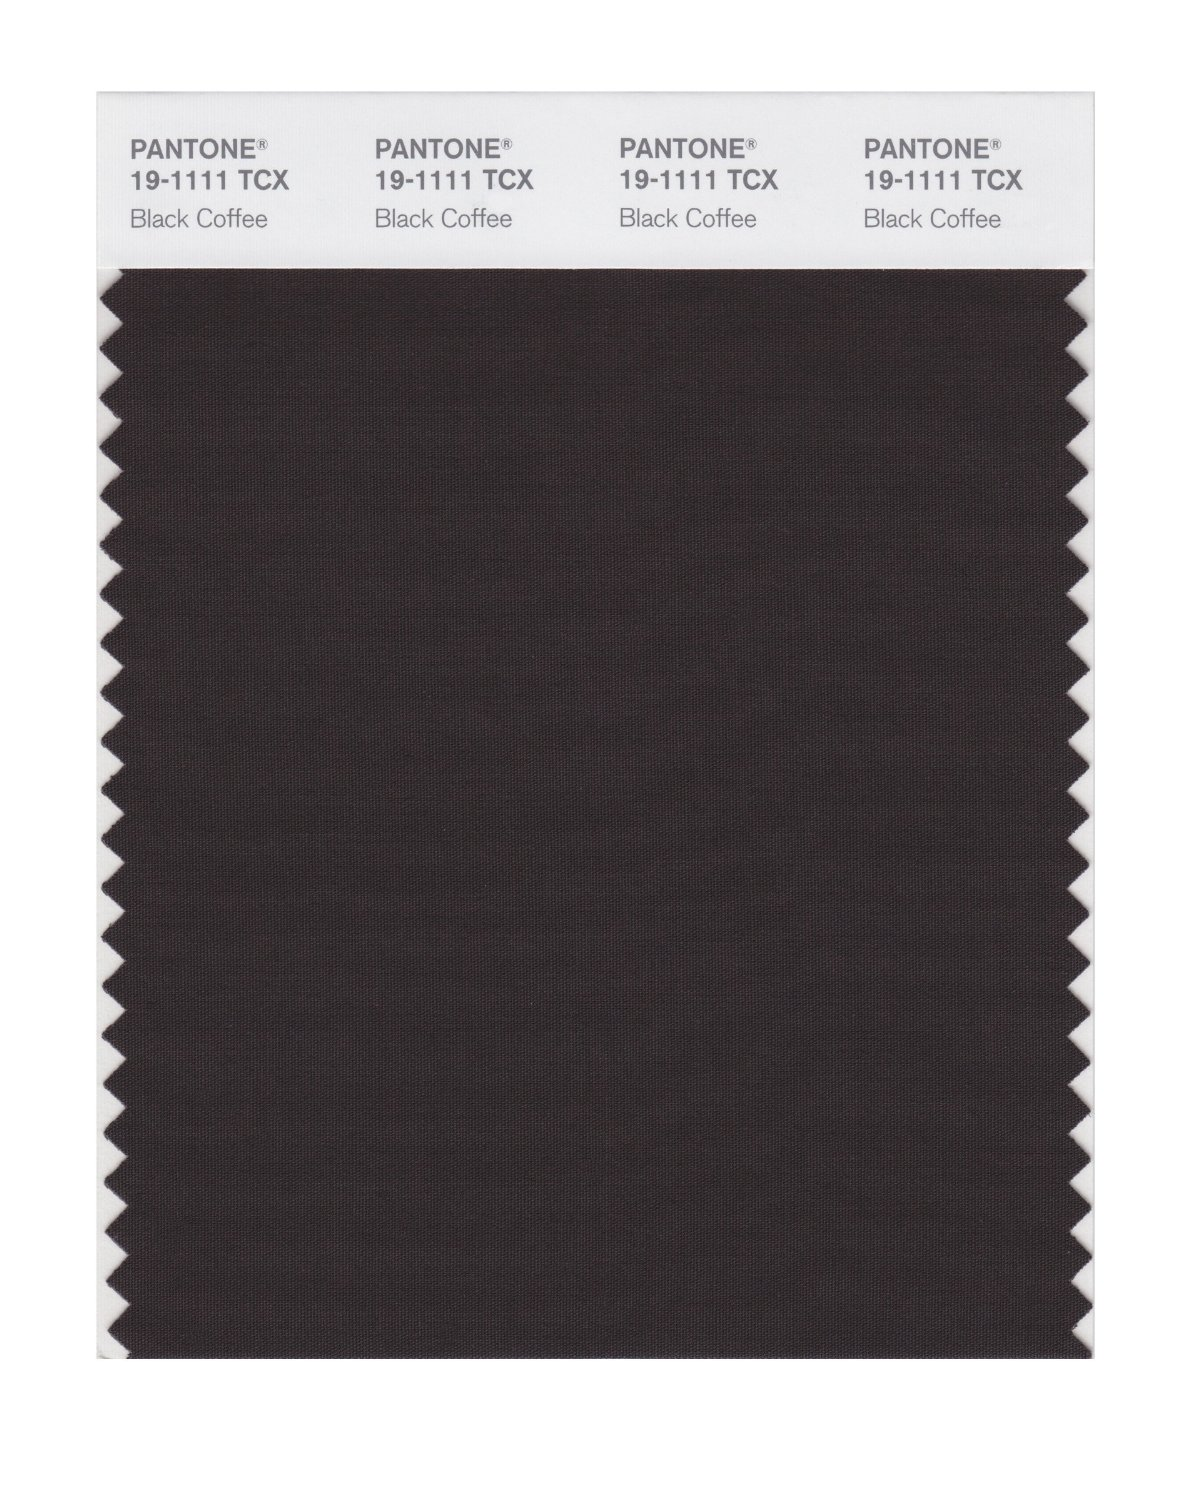 Pantone Smart Swatch 19-1111 Black Coffee